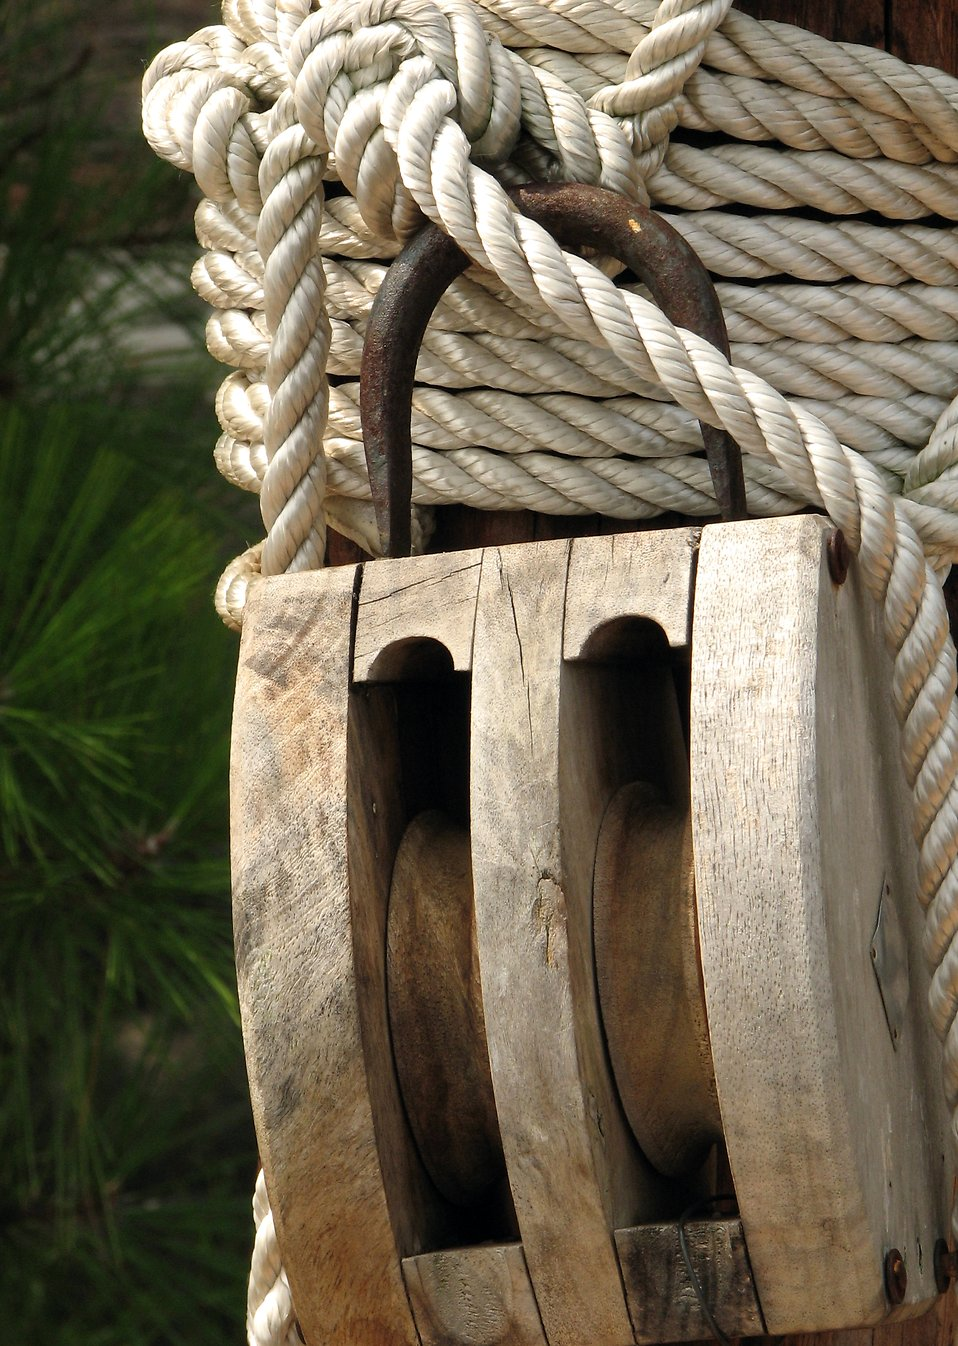 Closeup of rope and a wooden pulley : Free Stock Photo